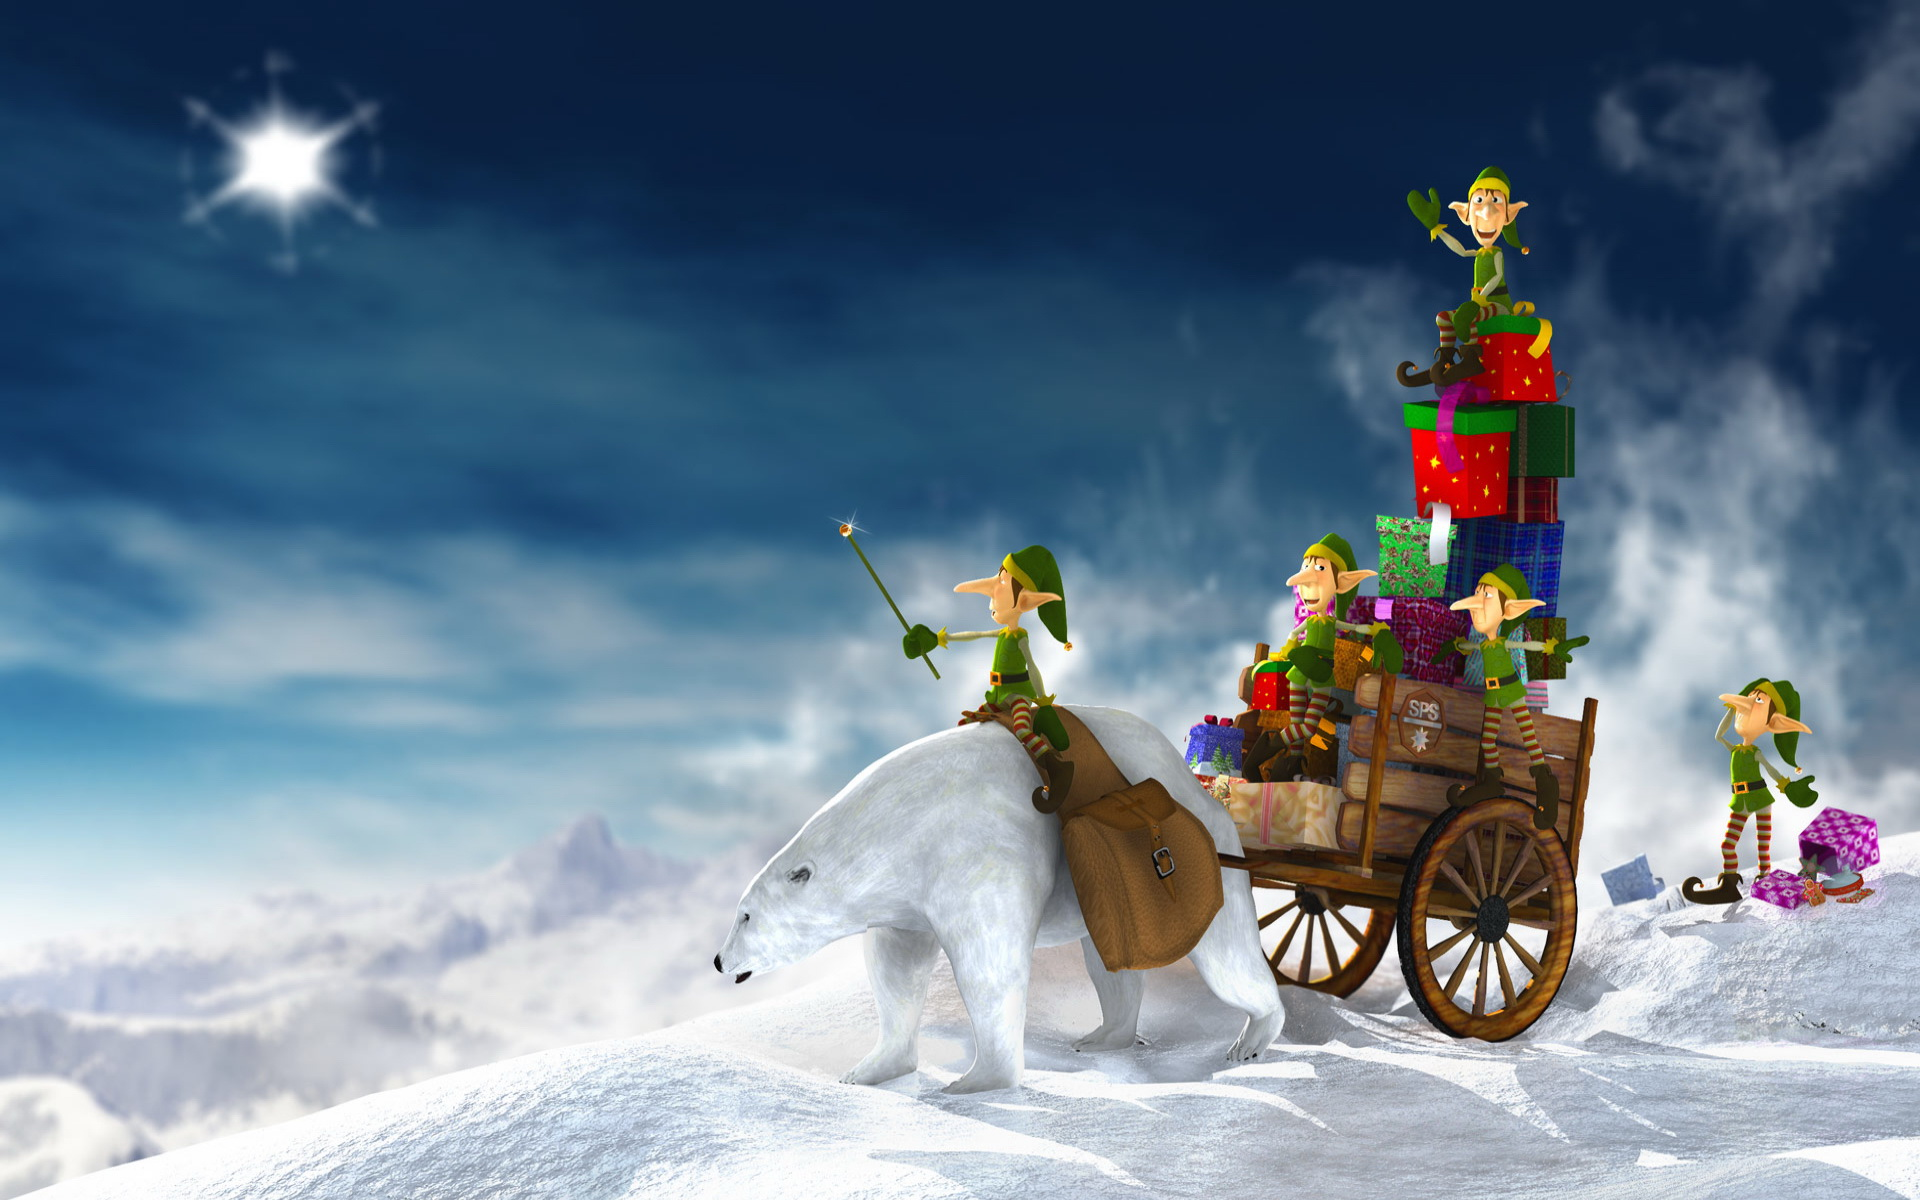 Cool and funny Christmas computer desktop wallpaper, dwarves on the white bear with gifts.